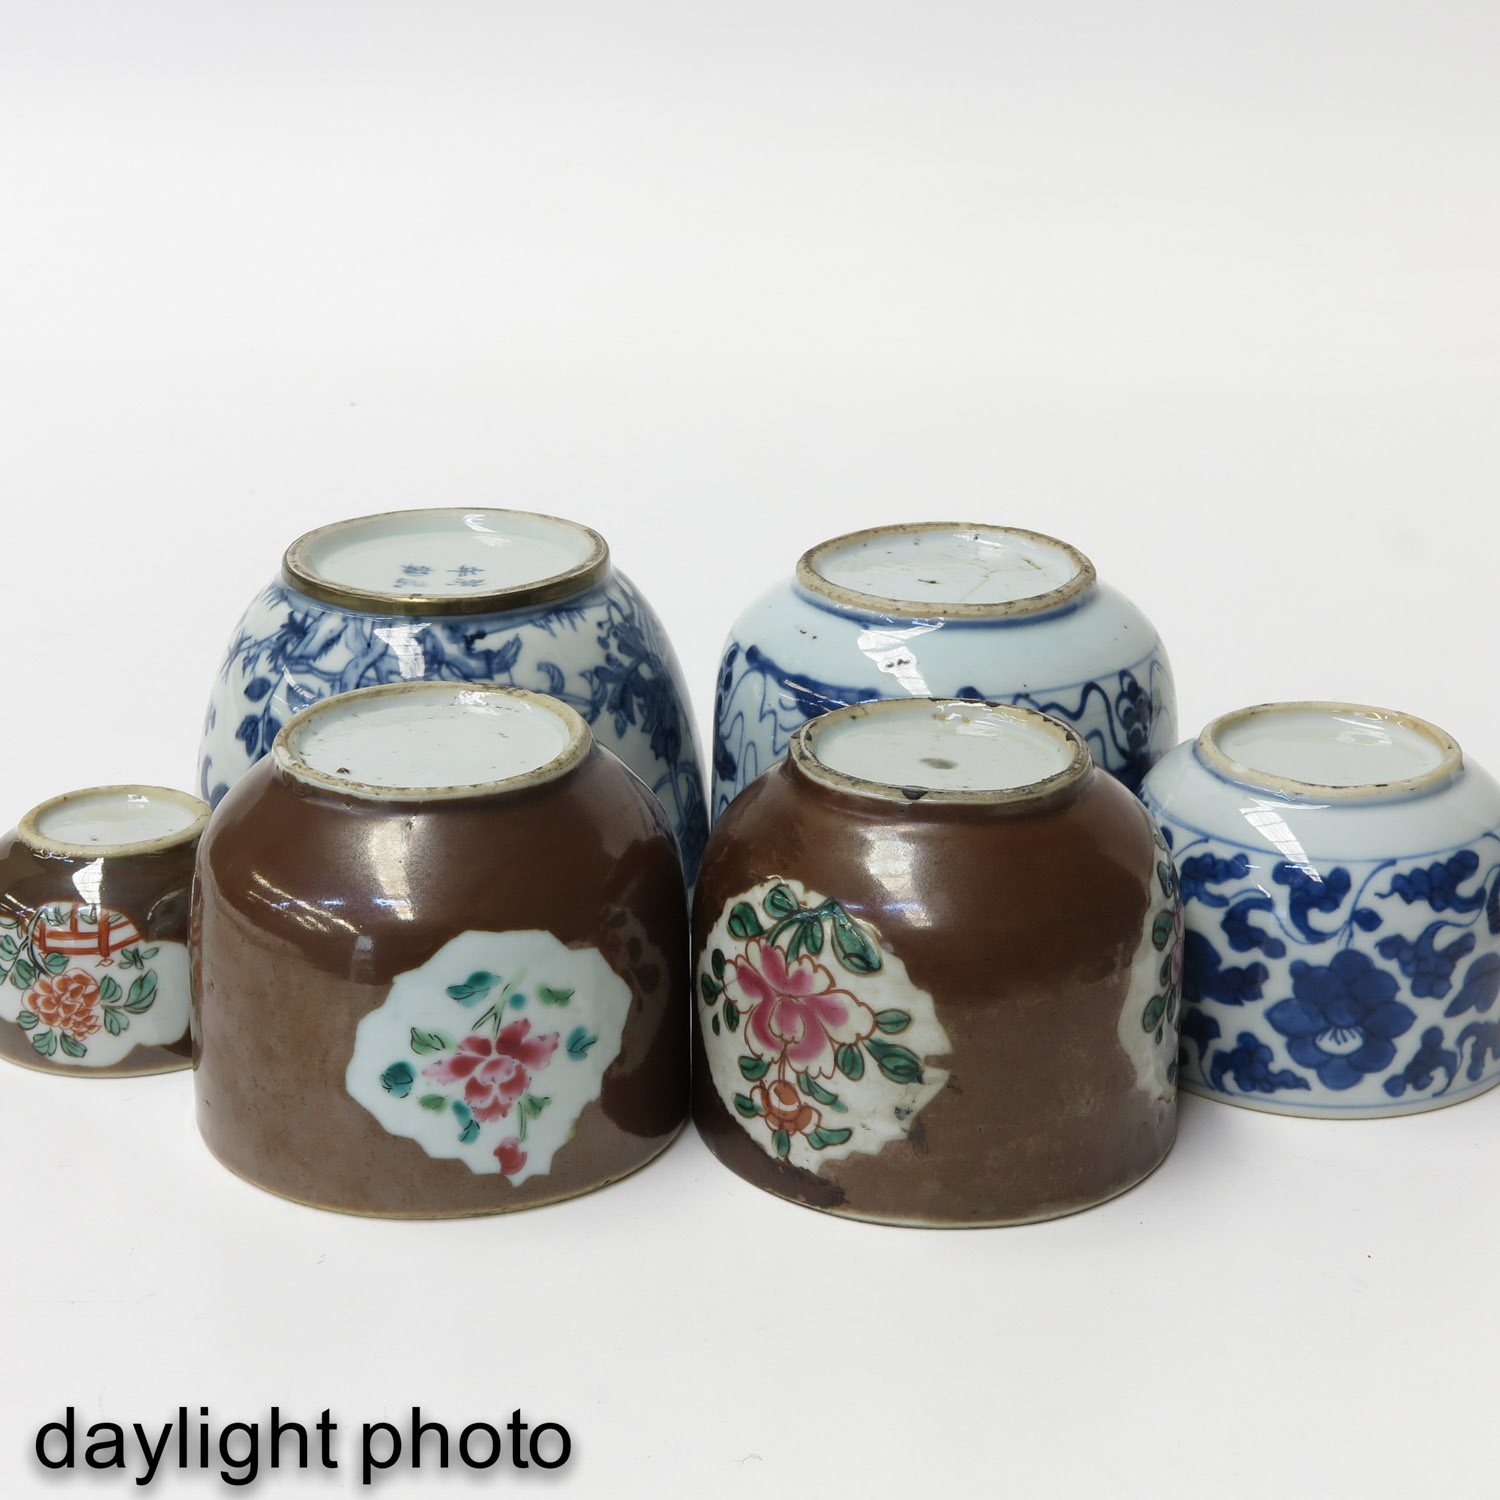 A Collection of Jars with Covers - Image 8 of 10